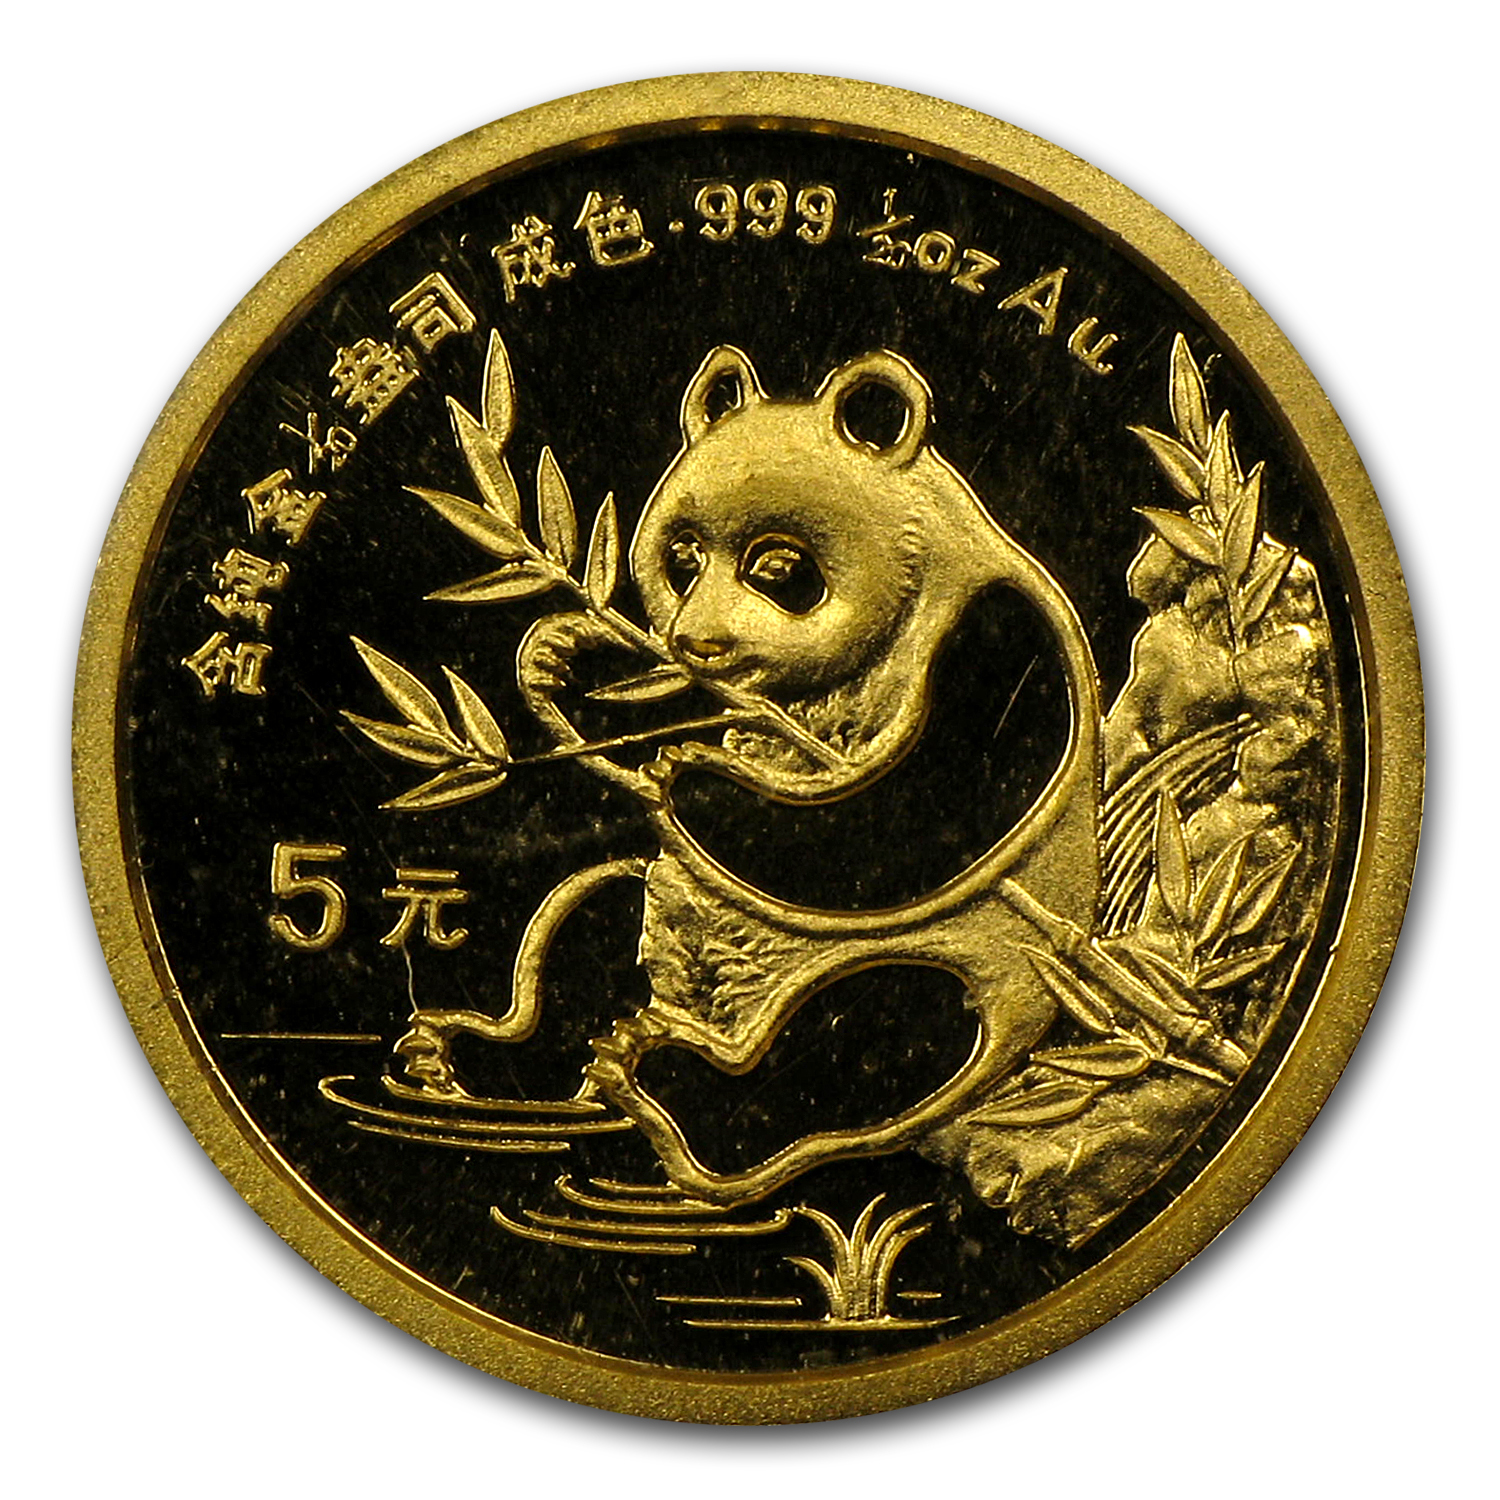 1991 China 1/20 oz Gold Panda Small Date BU (Sealed)